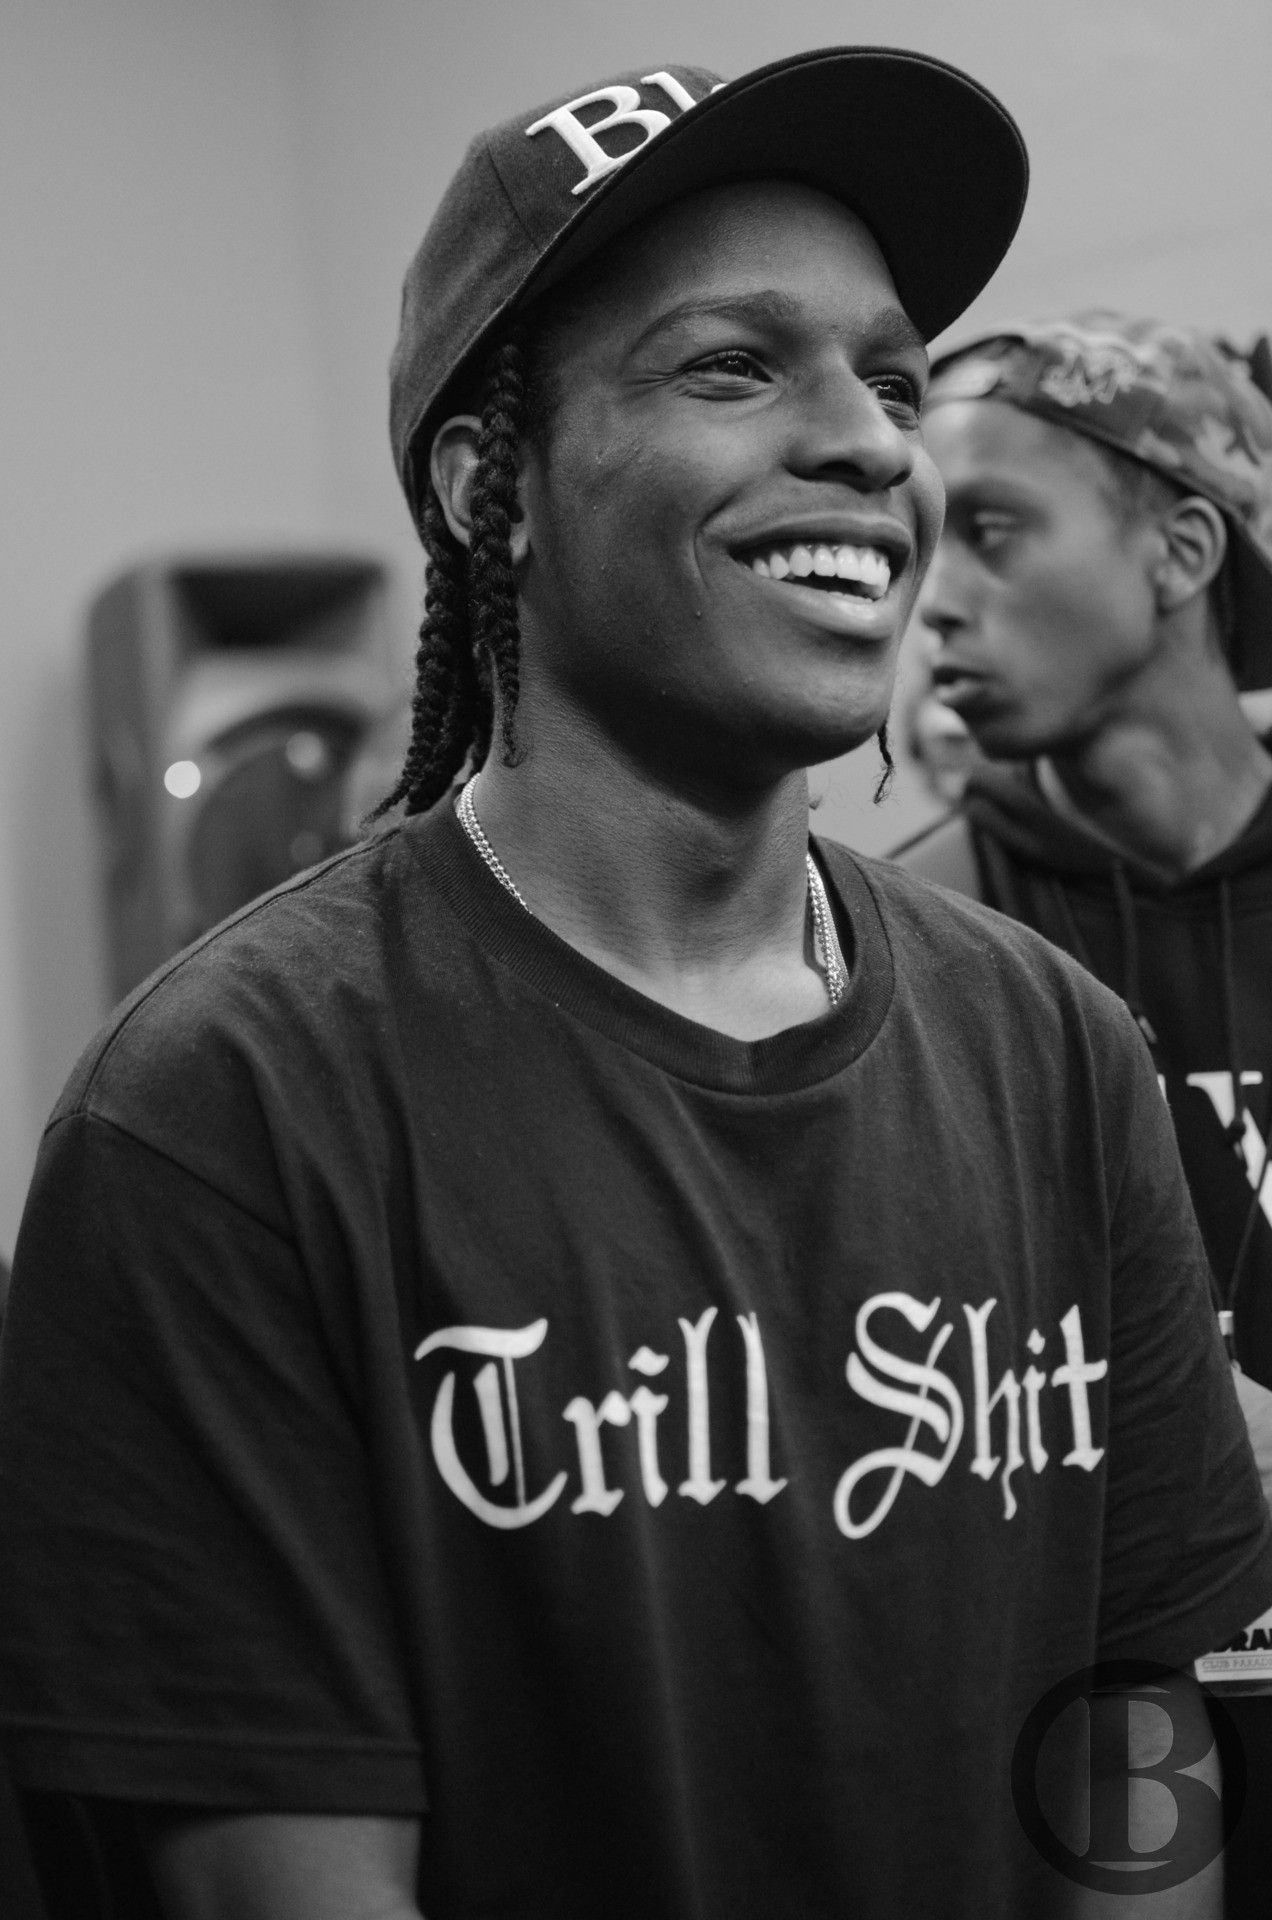 Asap rocky wallpapers top free asap rocky backgrounds - Asap wallpaper ...